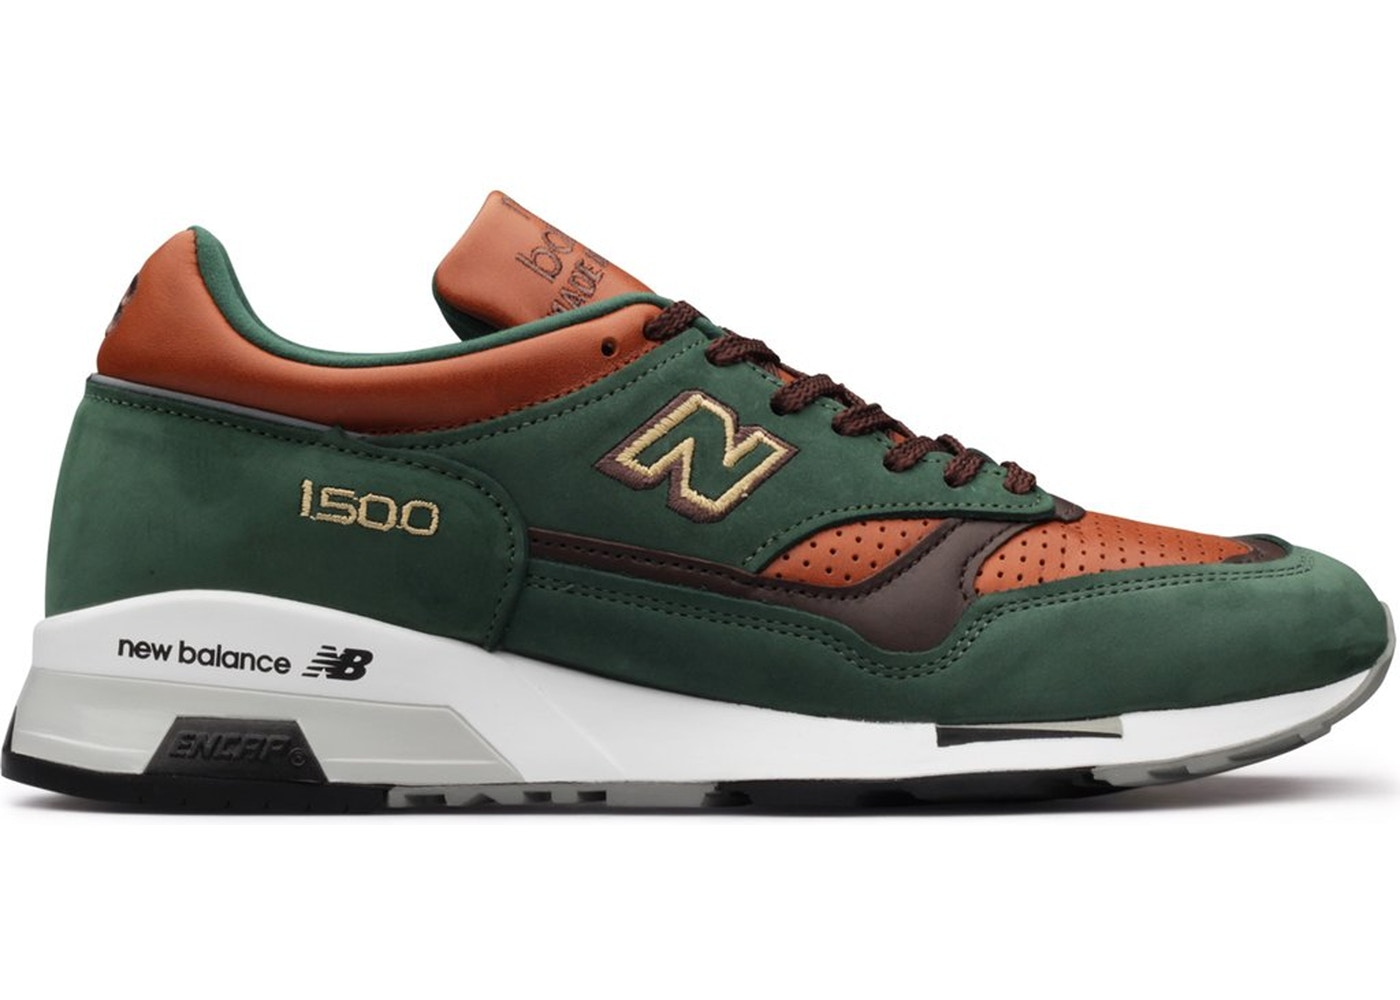 best website 2ed9e 2fd15 New Balance 1500 Robin Hood - M1500GT